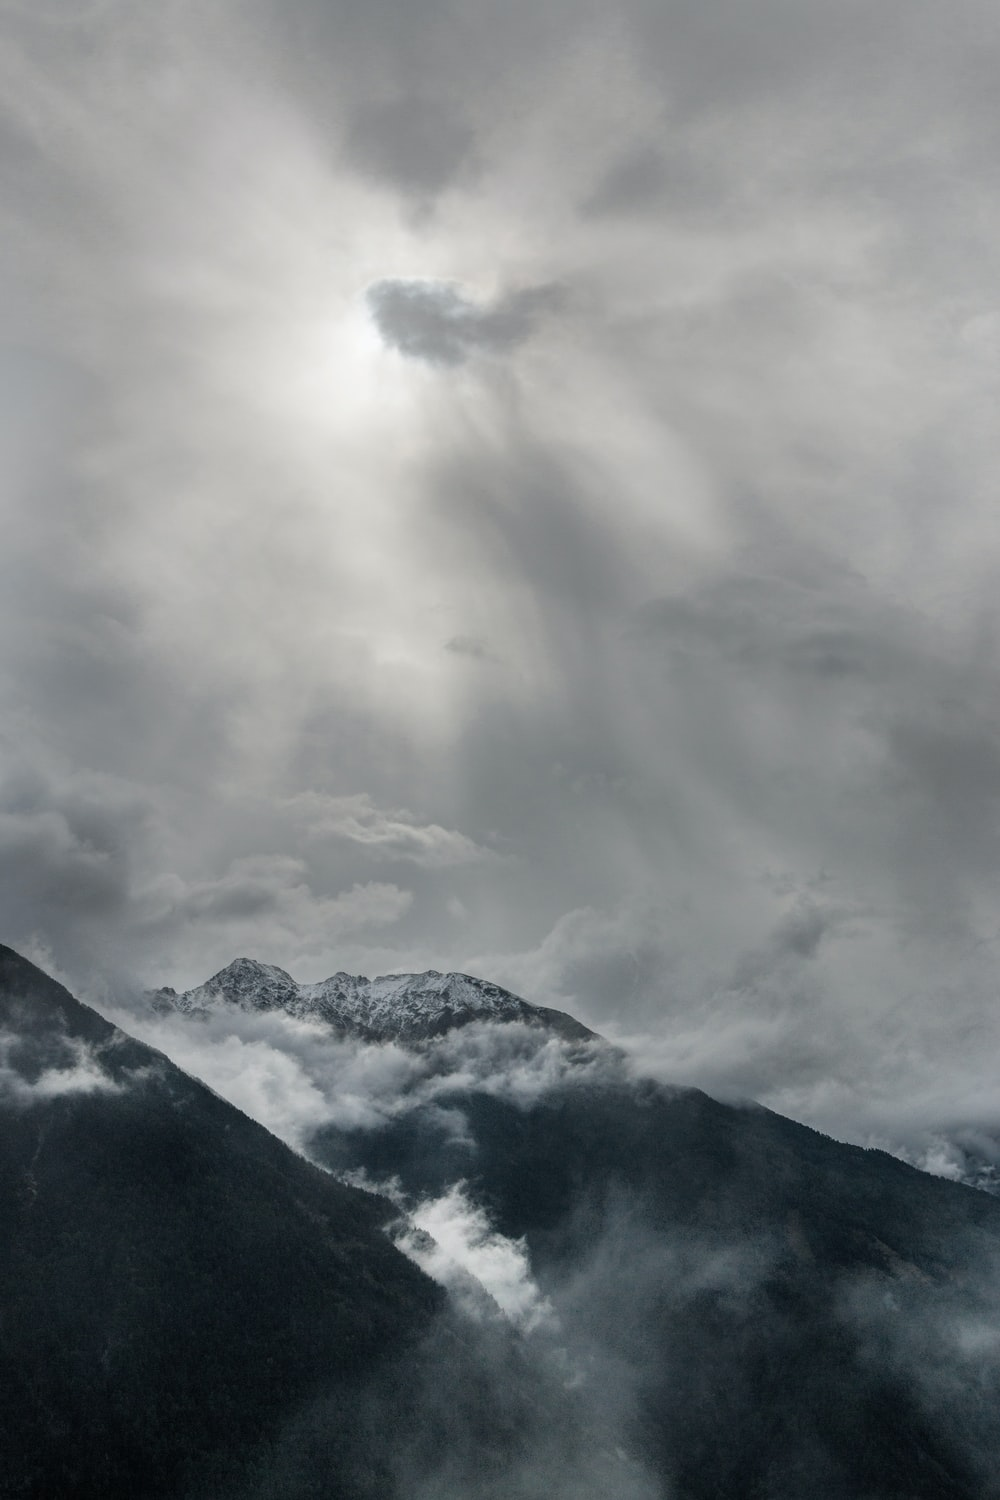 aerial view of snowy mountains under cloudy sky